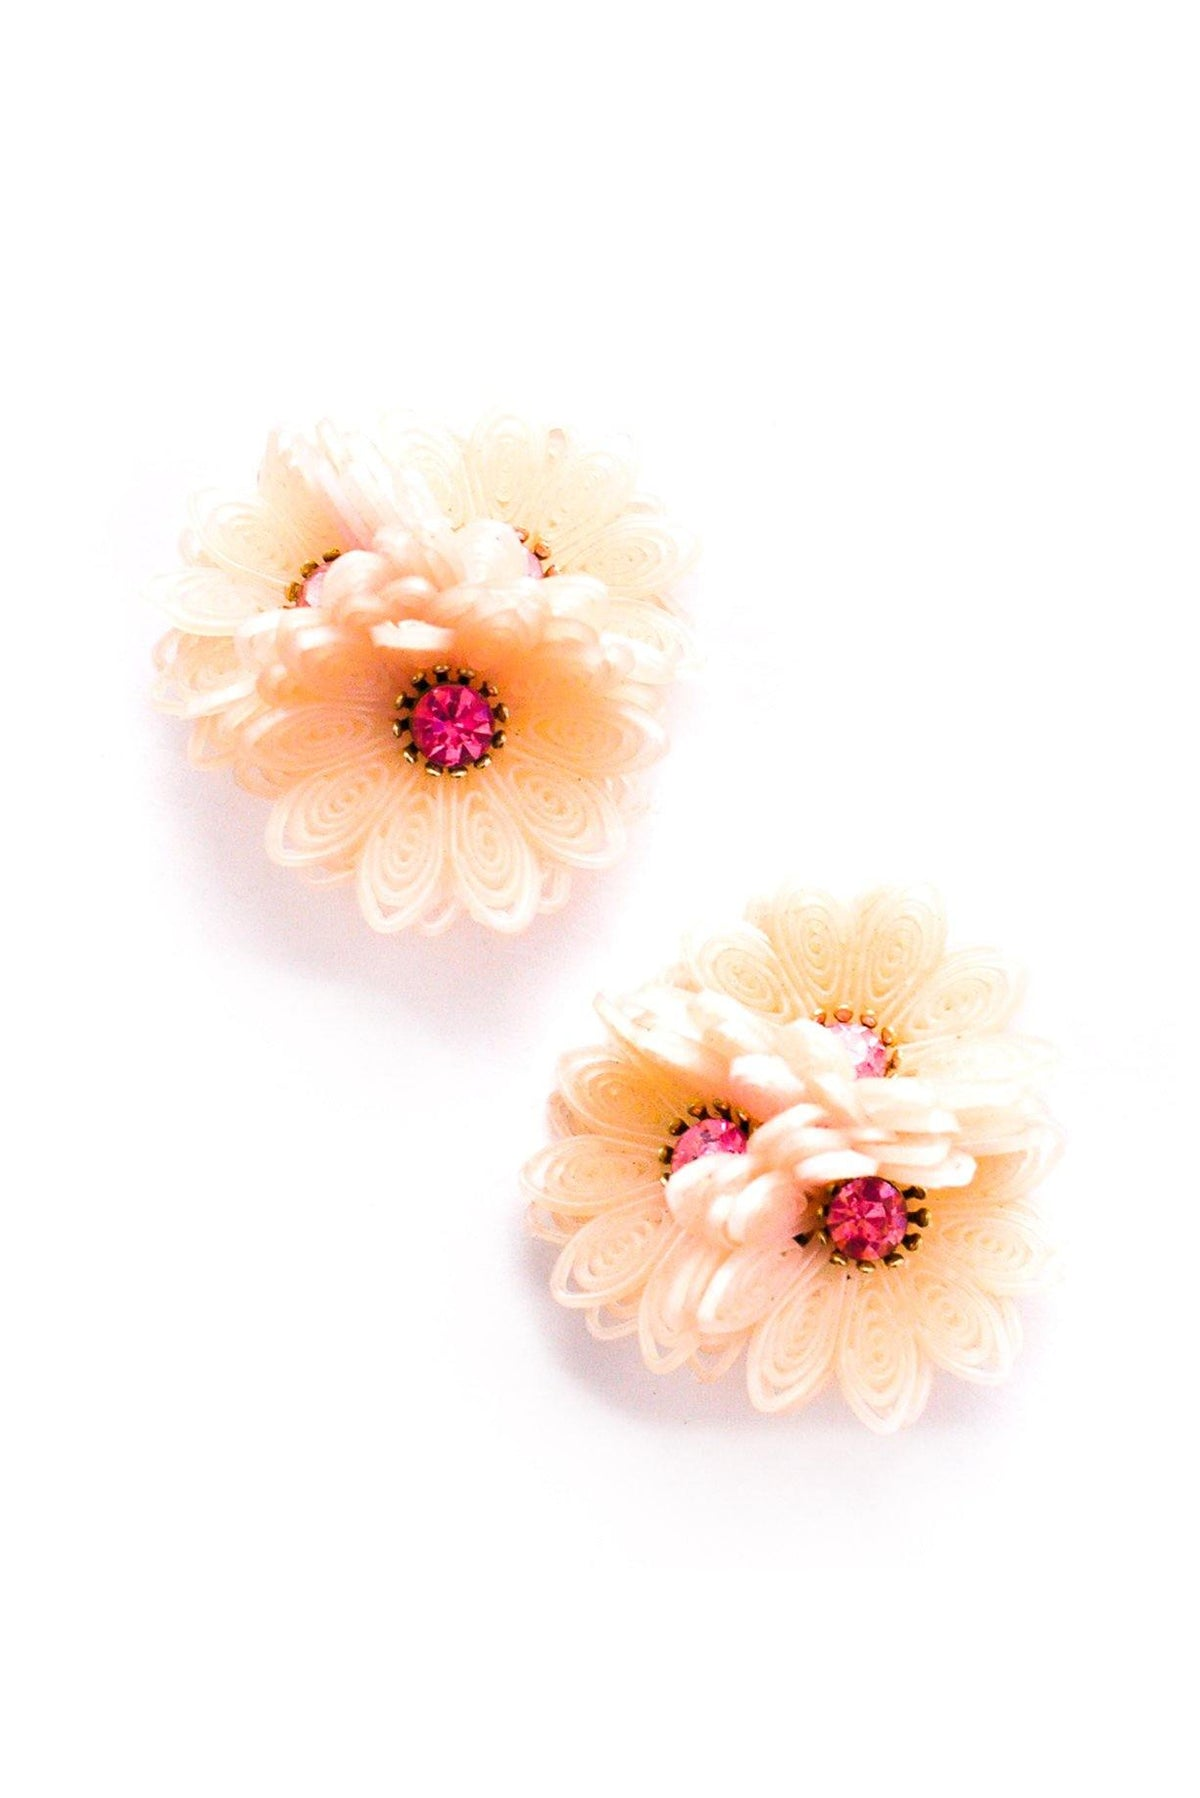 Vintage Peach Floral Cluster Clip-On Earrings from Sweet & Spark